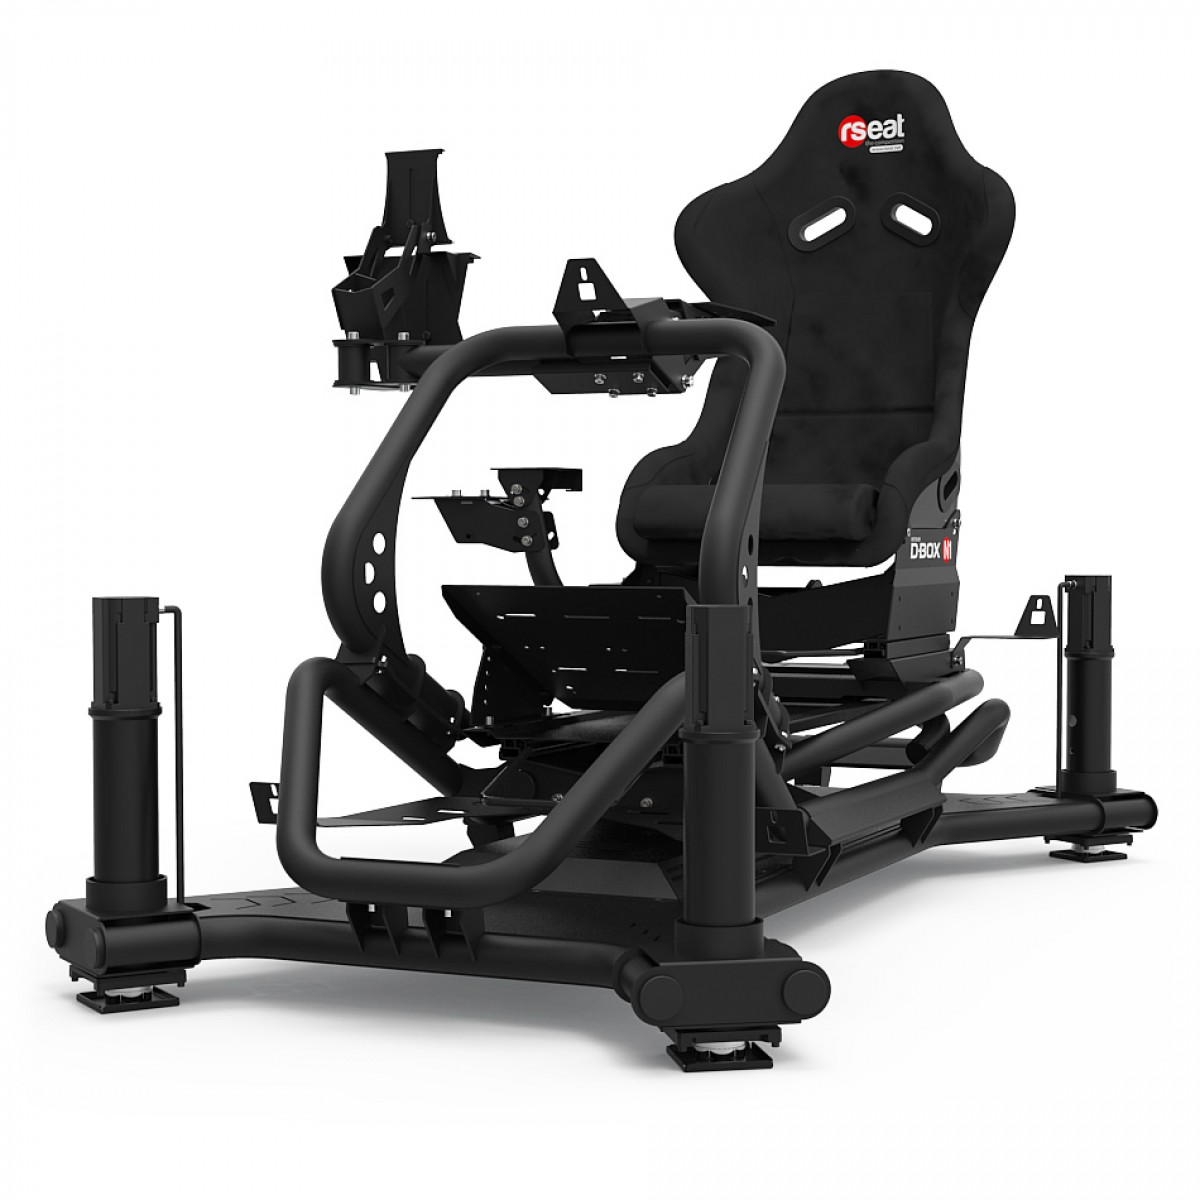 f1 racing chair unique desk n1 m4a 6000 black motion simulator